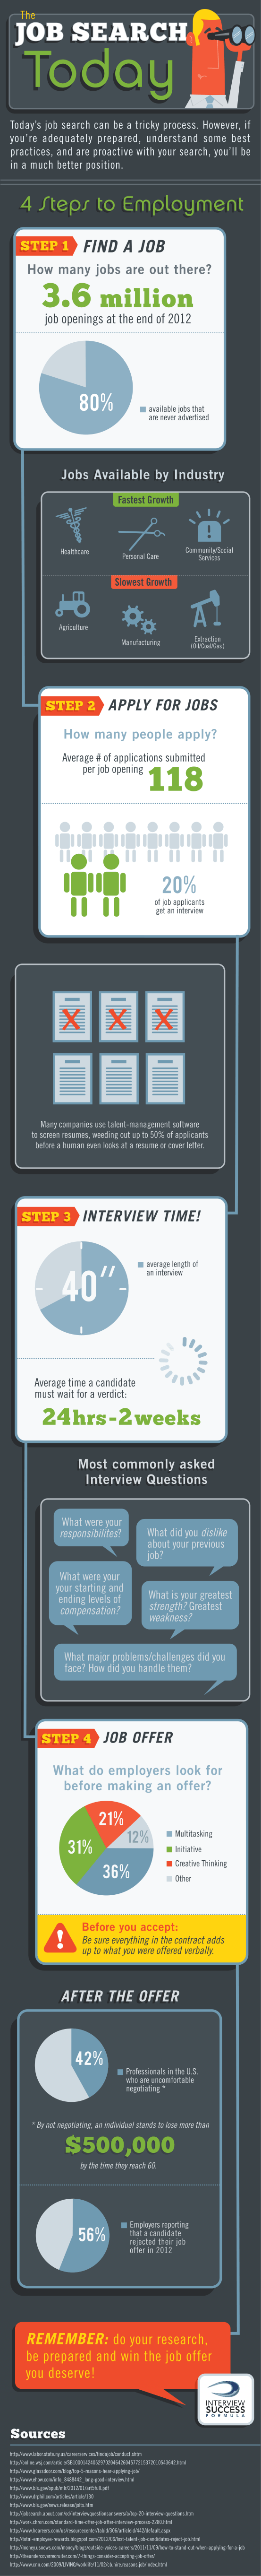 Job-Search-Today-infographic